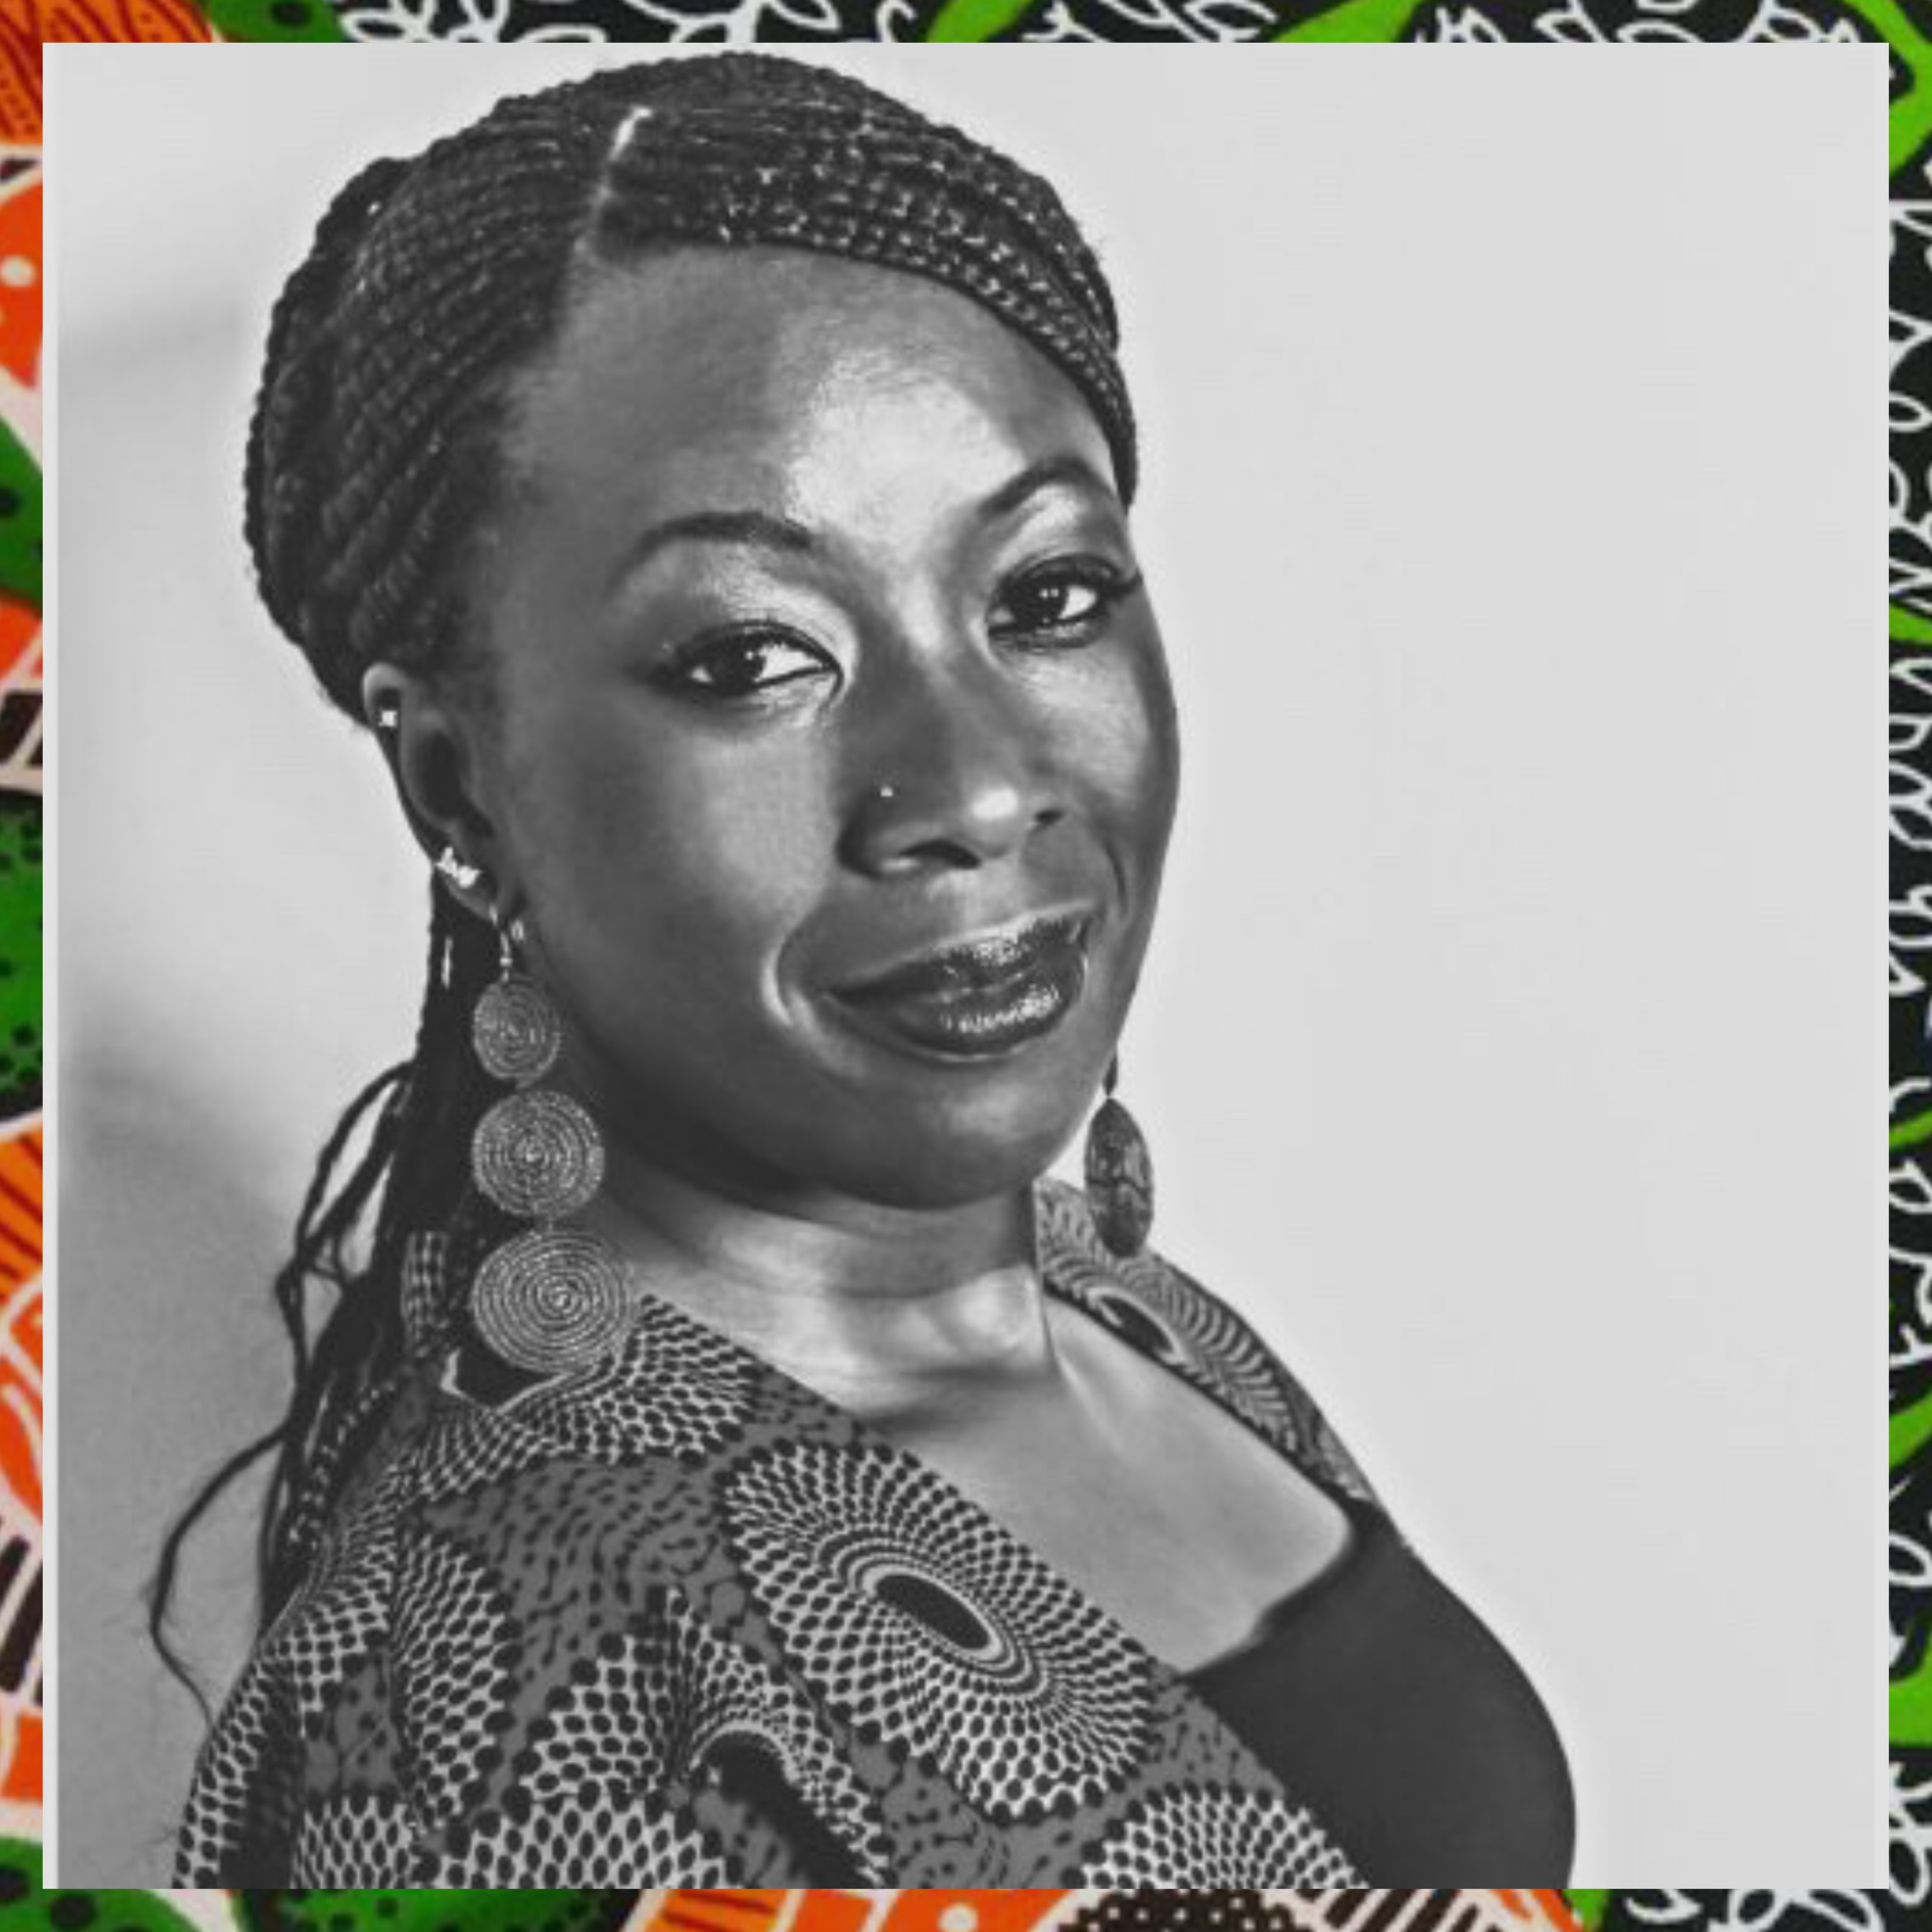 Scholar, Organization Development Consultant, writer and curator of African identity and leadership stories - Yabome Gilpin-Jackson